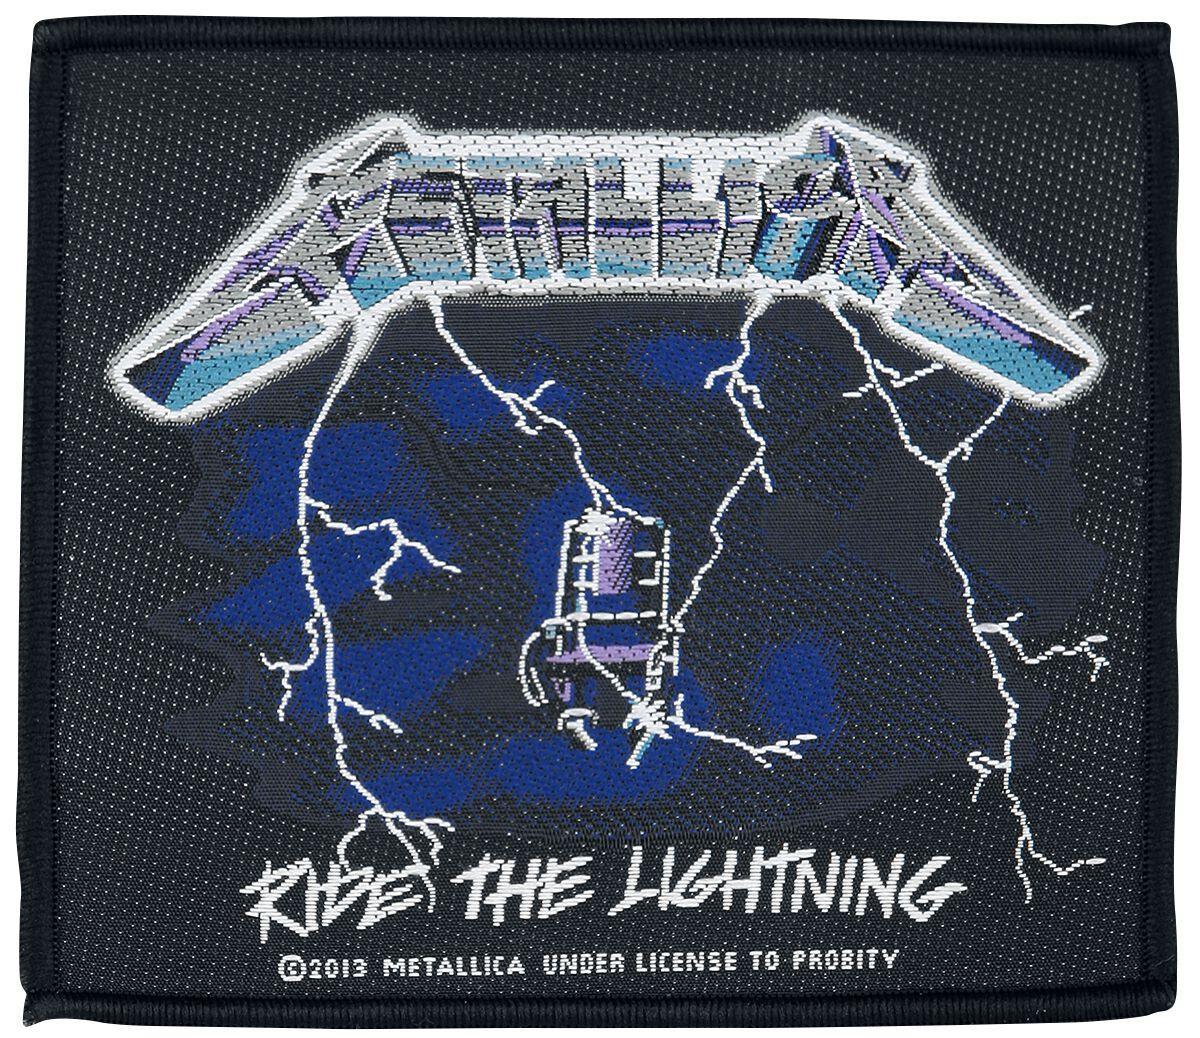 a7b5f2258 Ride The Lightning Metallica Sleeveless – Daily Motivational Quotes